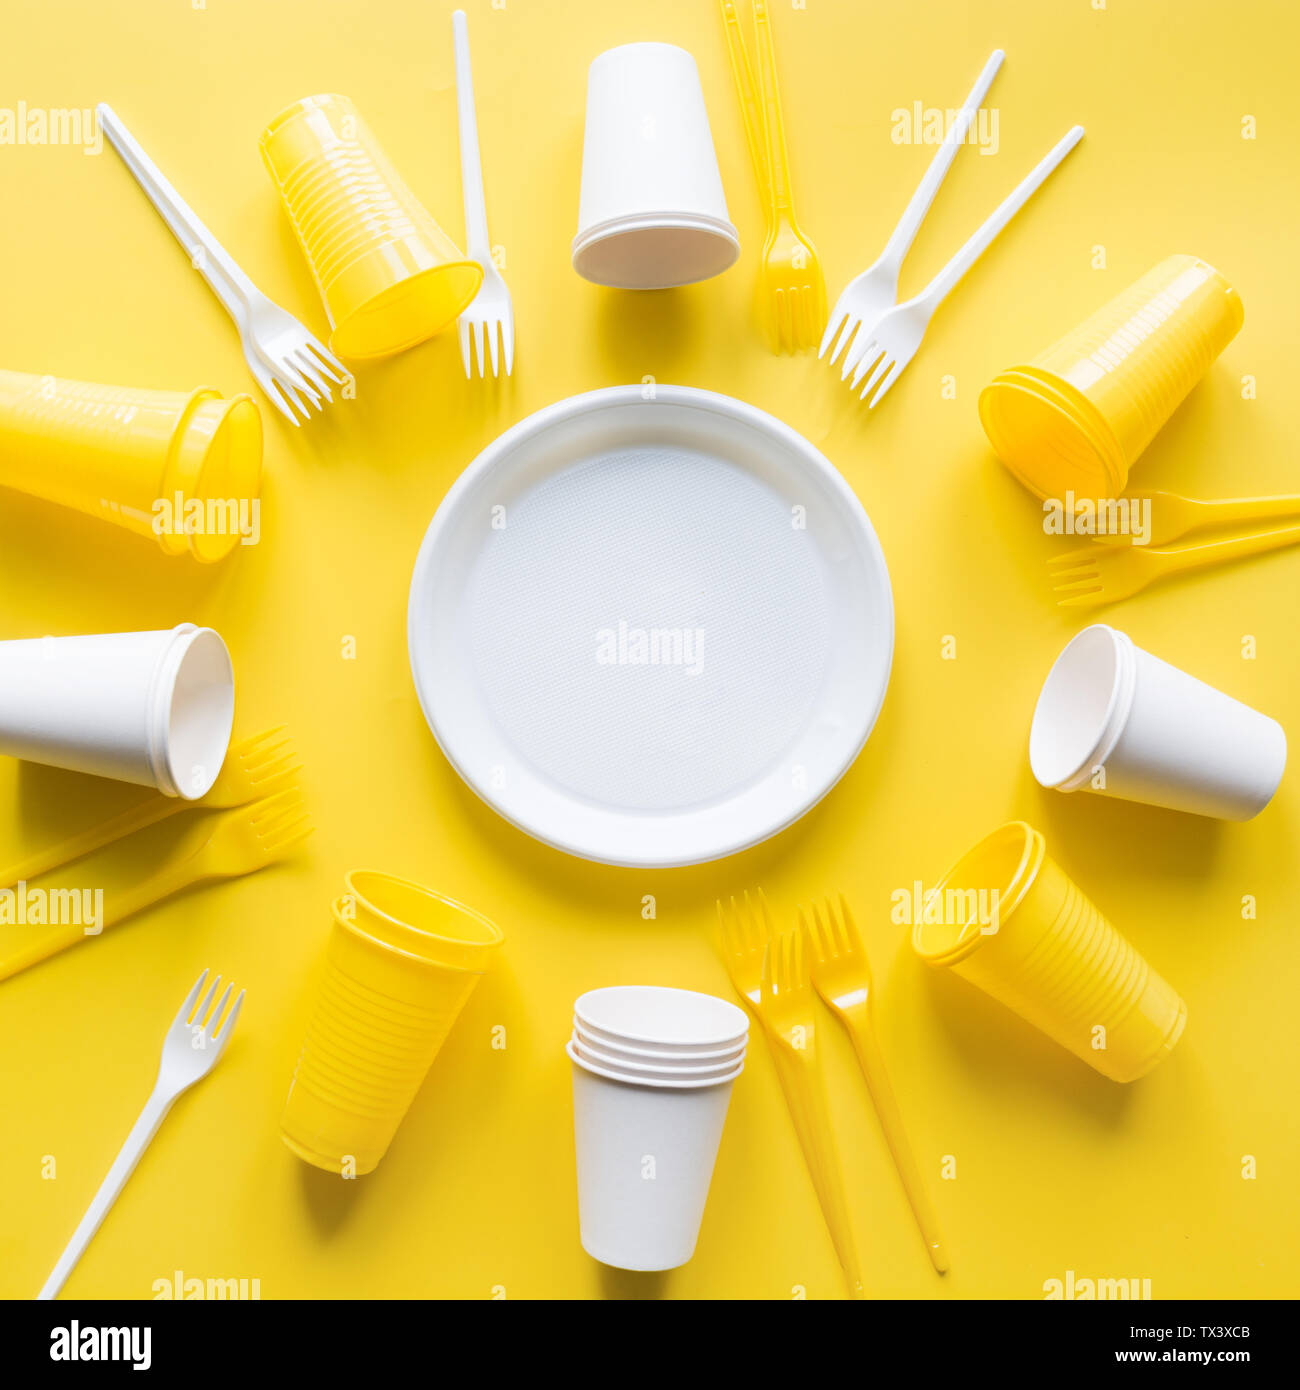 Disposable picnic utensils for recycling on yellow. Environment